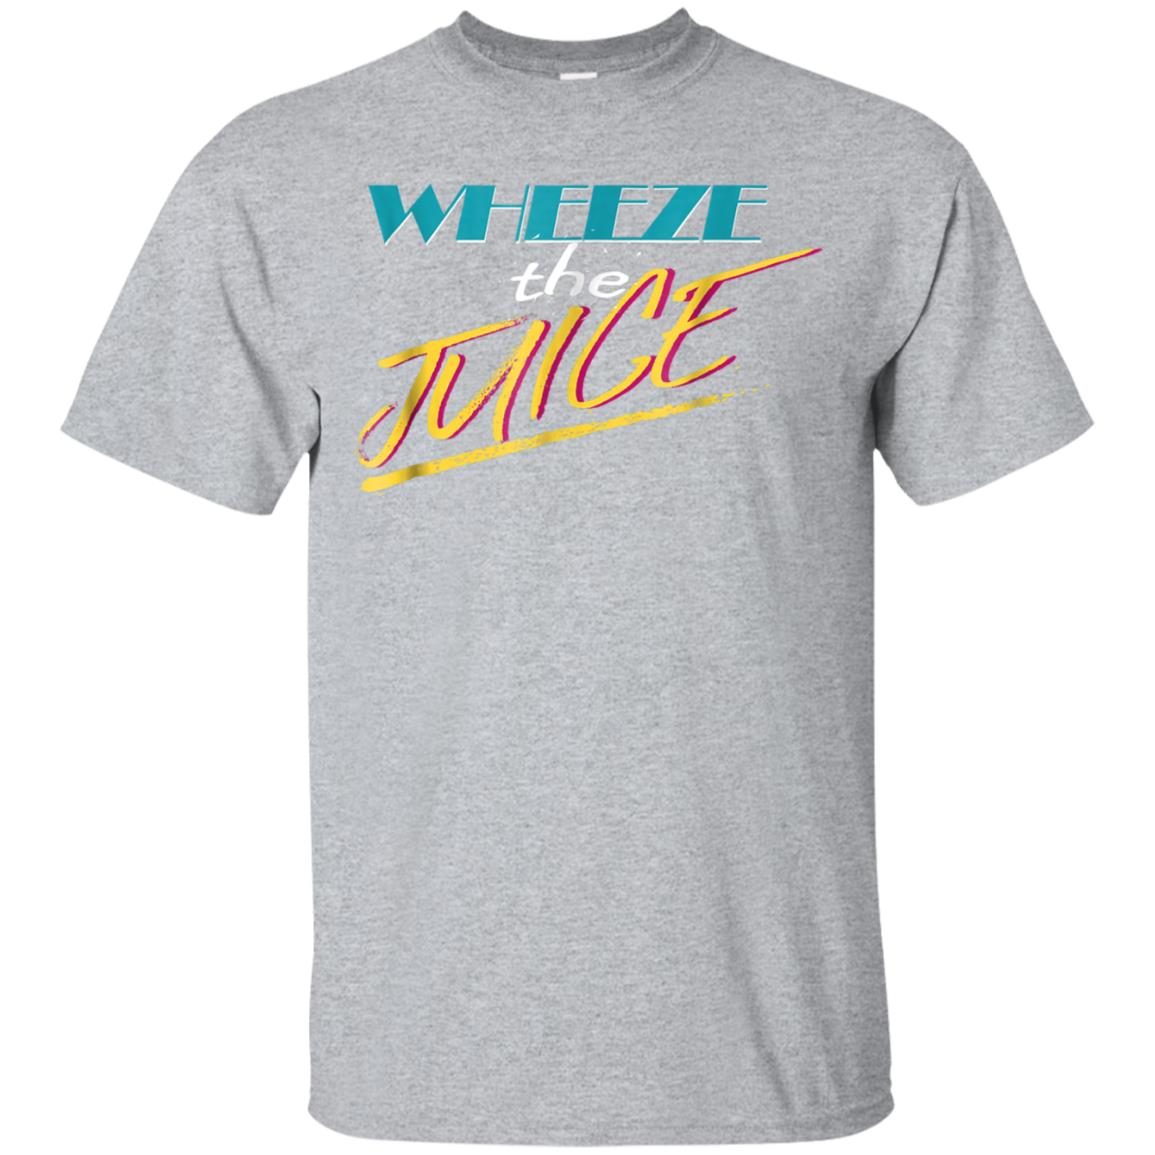 Wheeze the Juice 90s themed gift t-shirt 99promocode